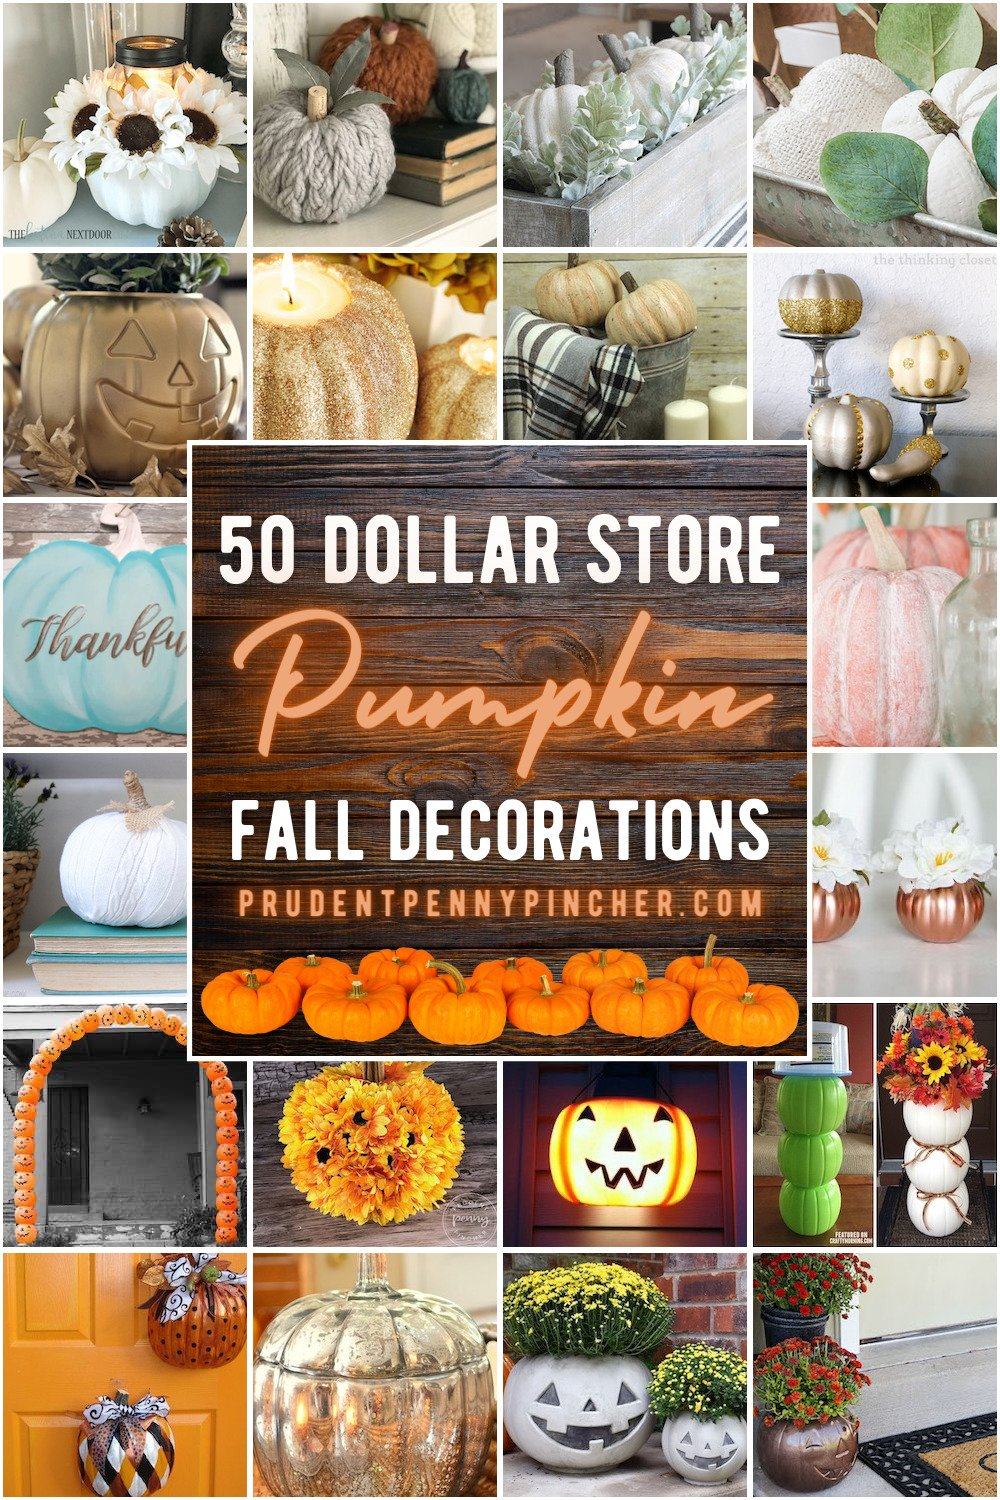 50 Dollar Store Pumpkin Fall Decor Ideas Prudent Penny Pincher